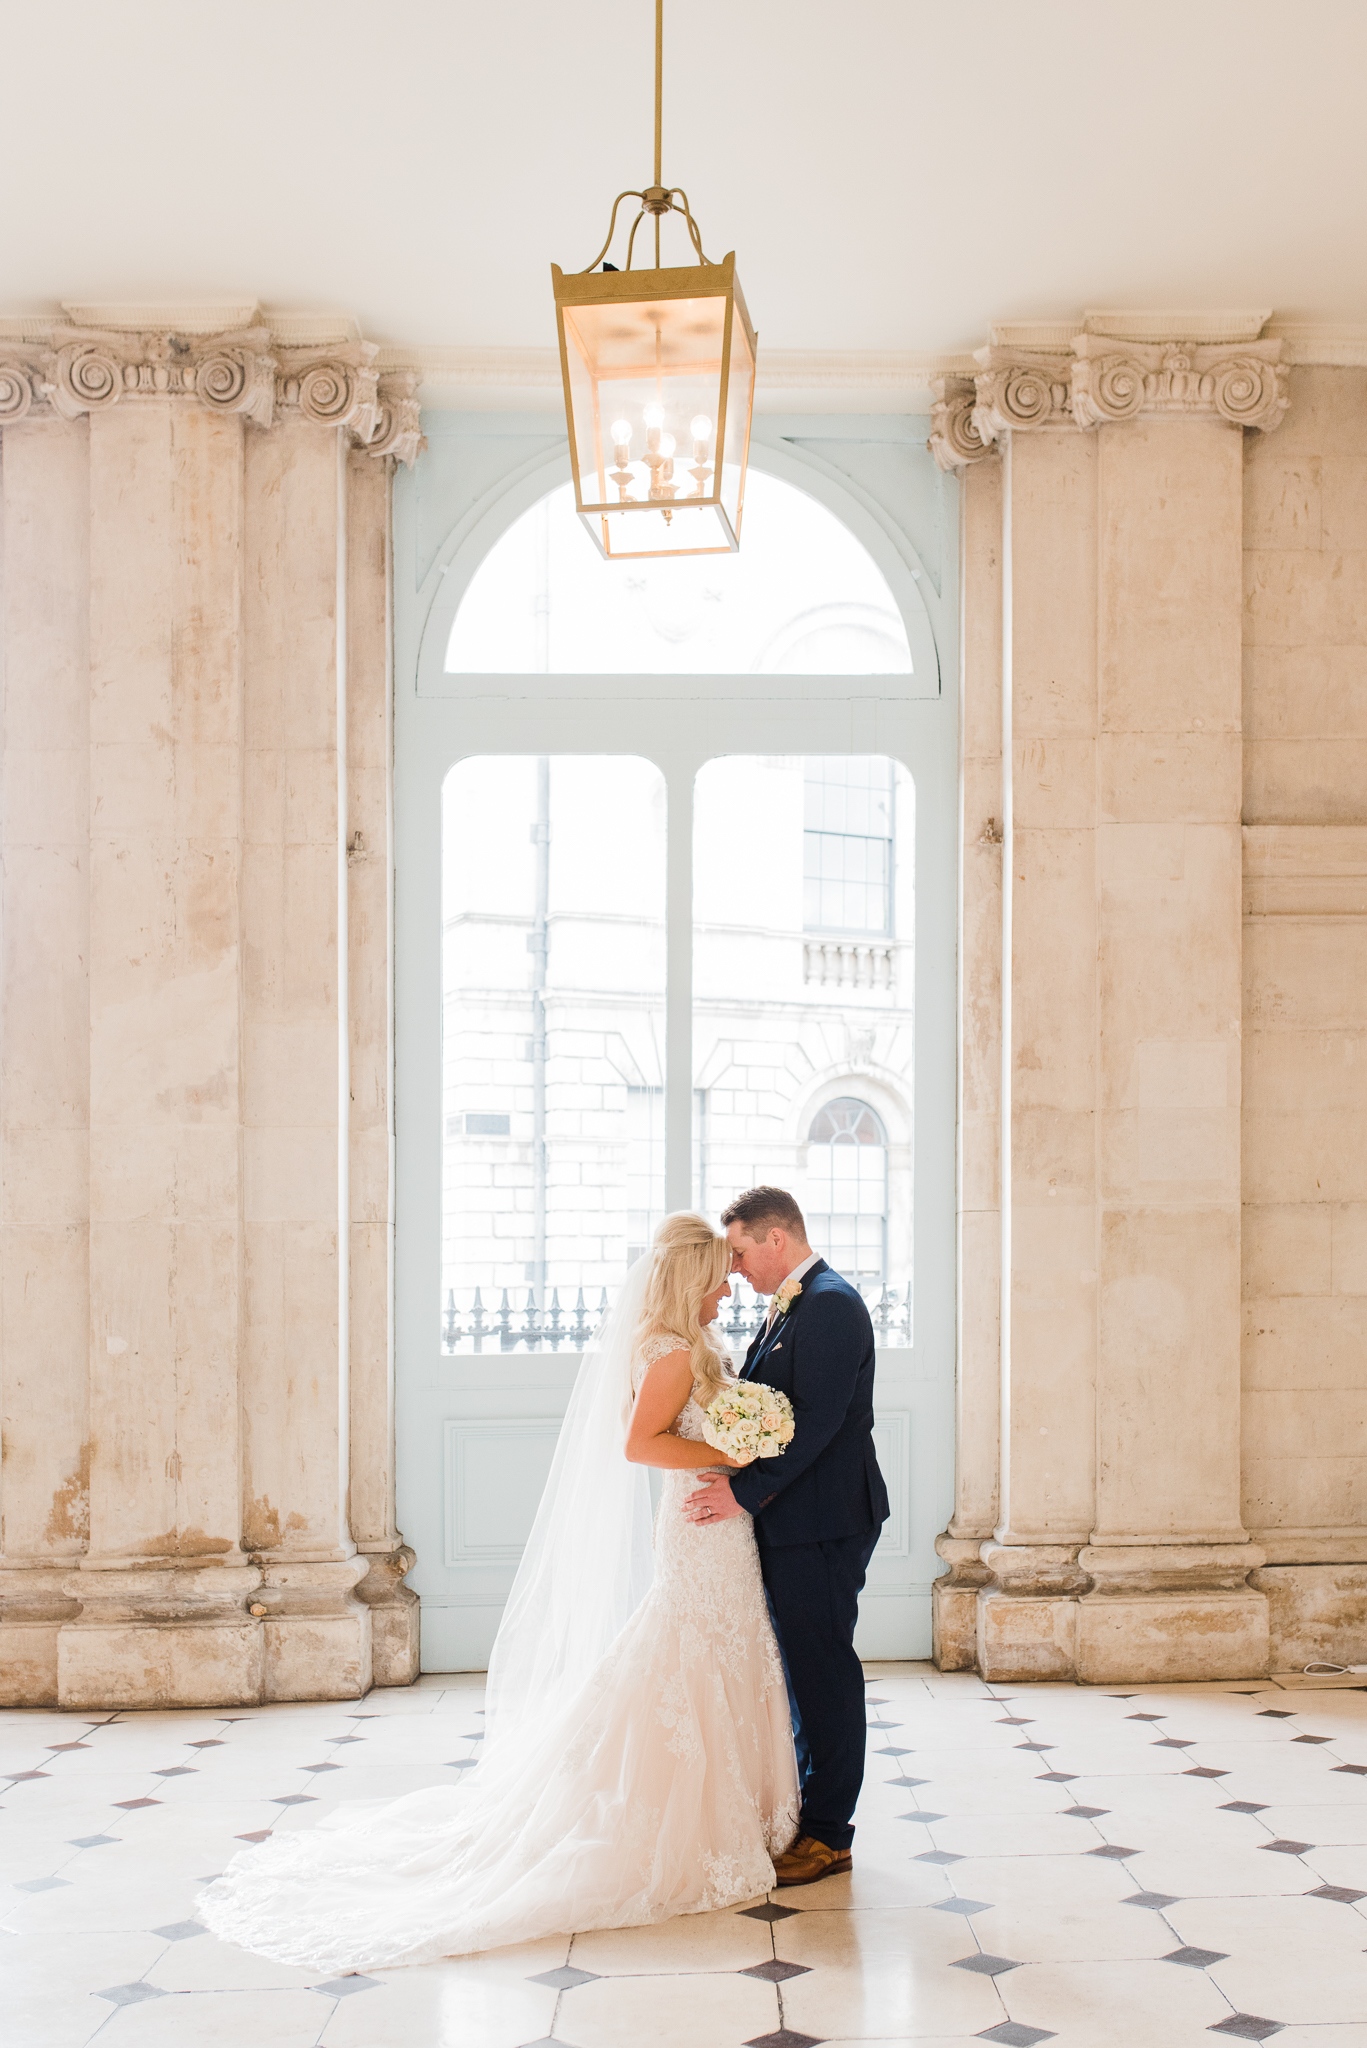 Dublin wedding photographer in City Hall